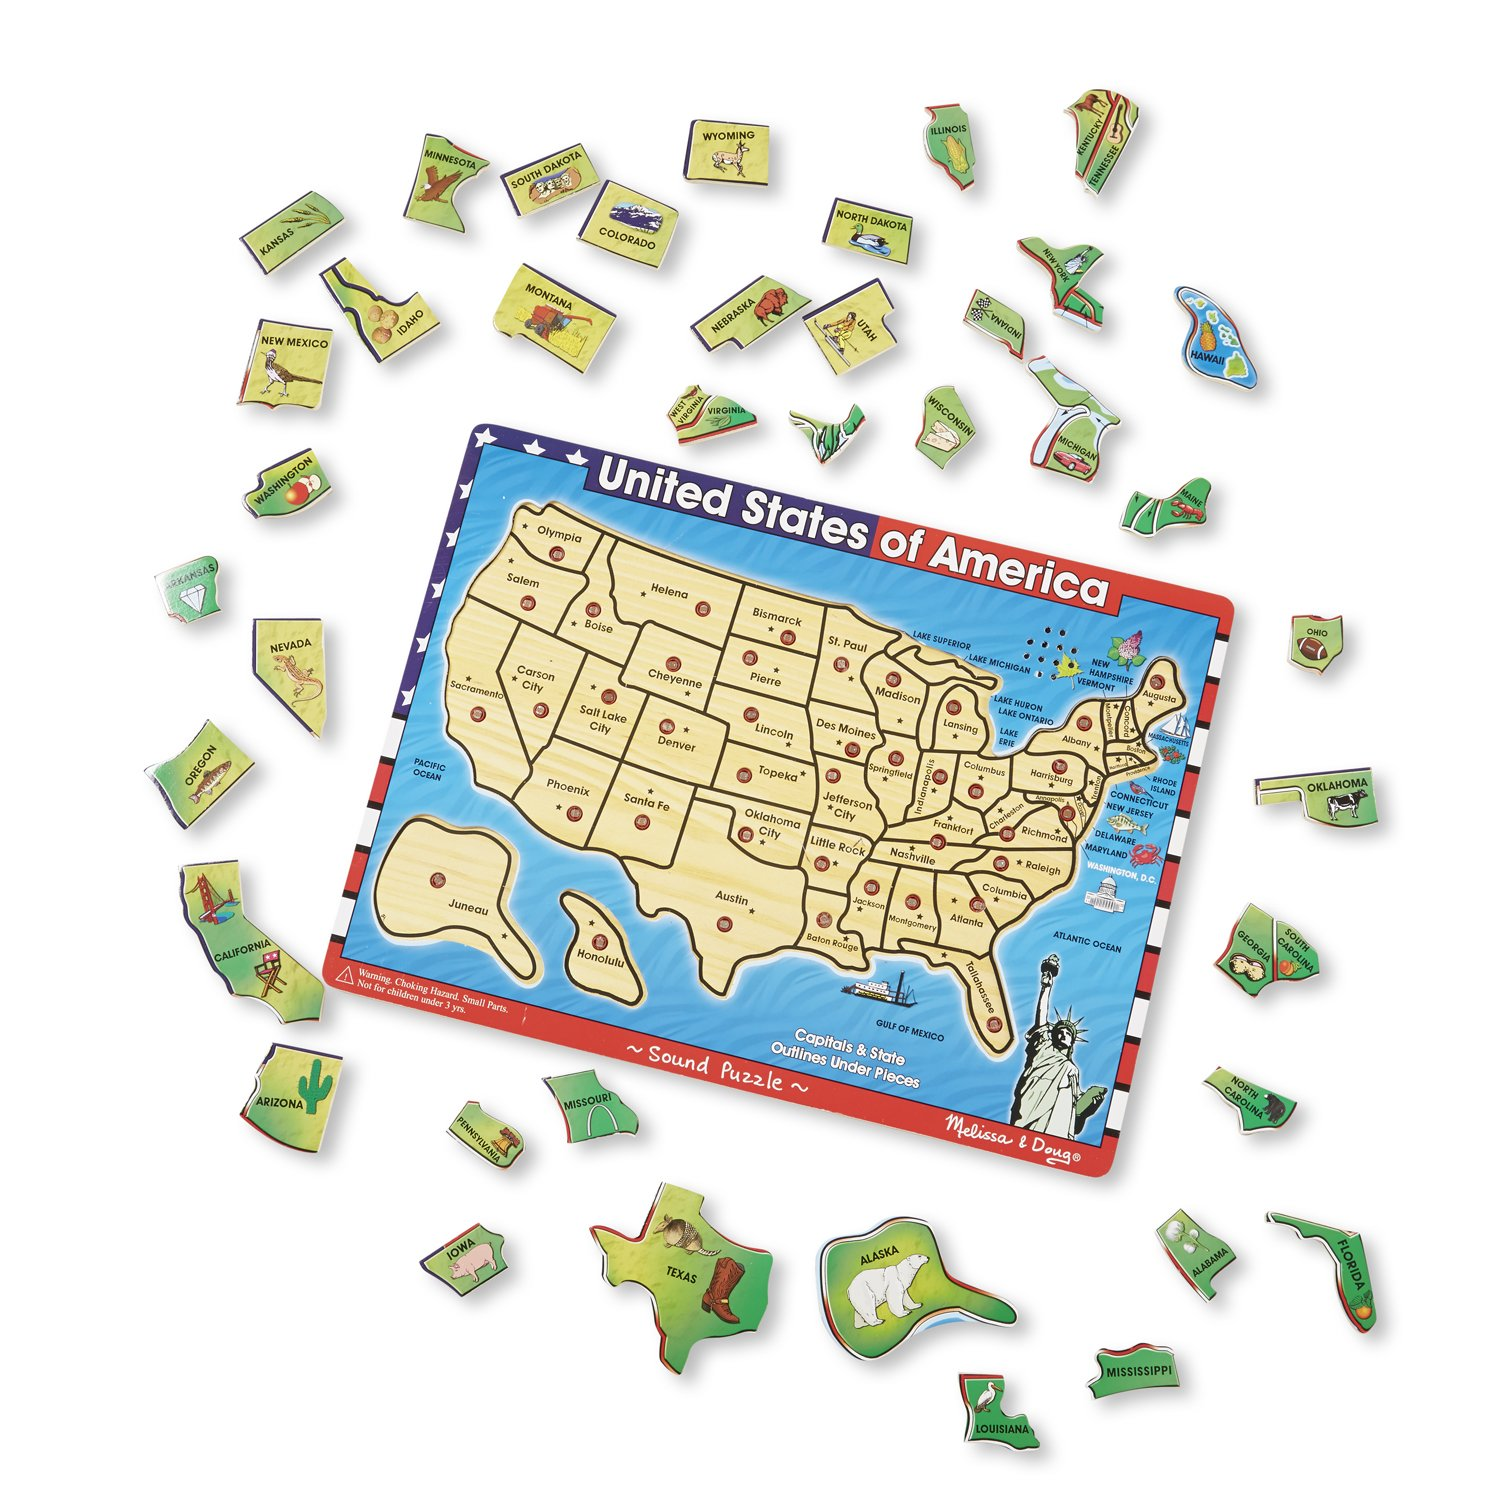 40 Pieces, Wooden Sound Puzzle Helps you Learn About the 50 States and their Capitals